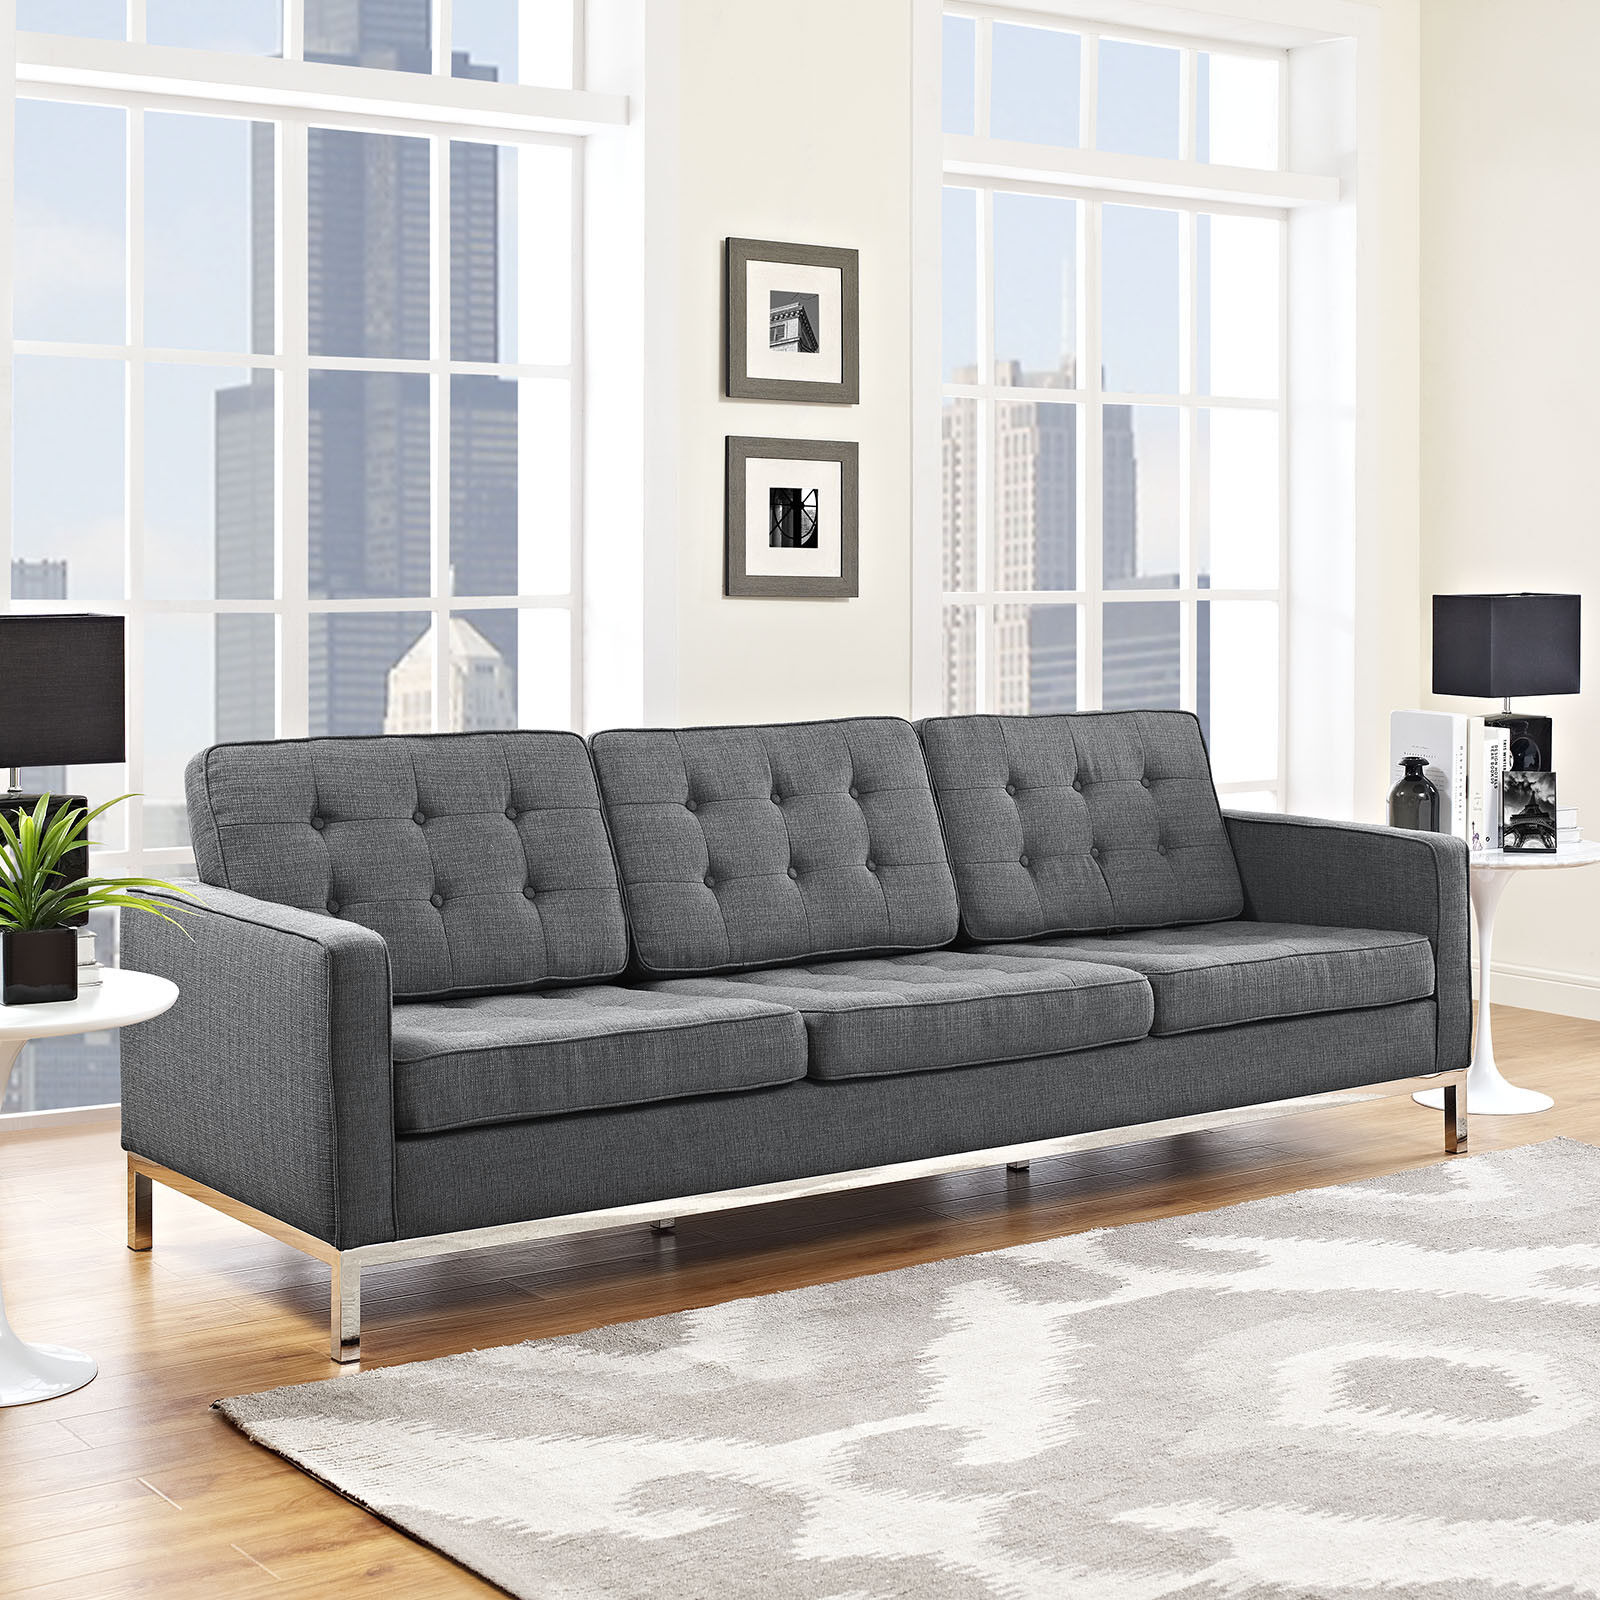 Excellent Details About Mid Century Modern Tufted Upholstered Fabric Living Room Sofa Couch In Gray Spiritservingveterans Wood Chair Design Ideas Spiritservingveteransorg